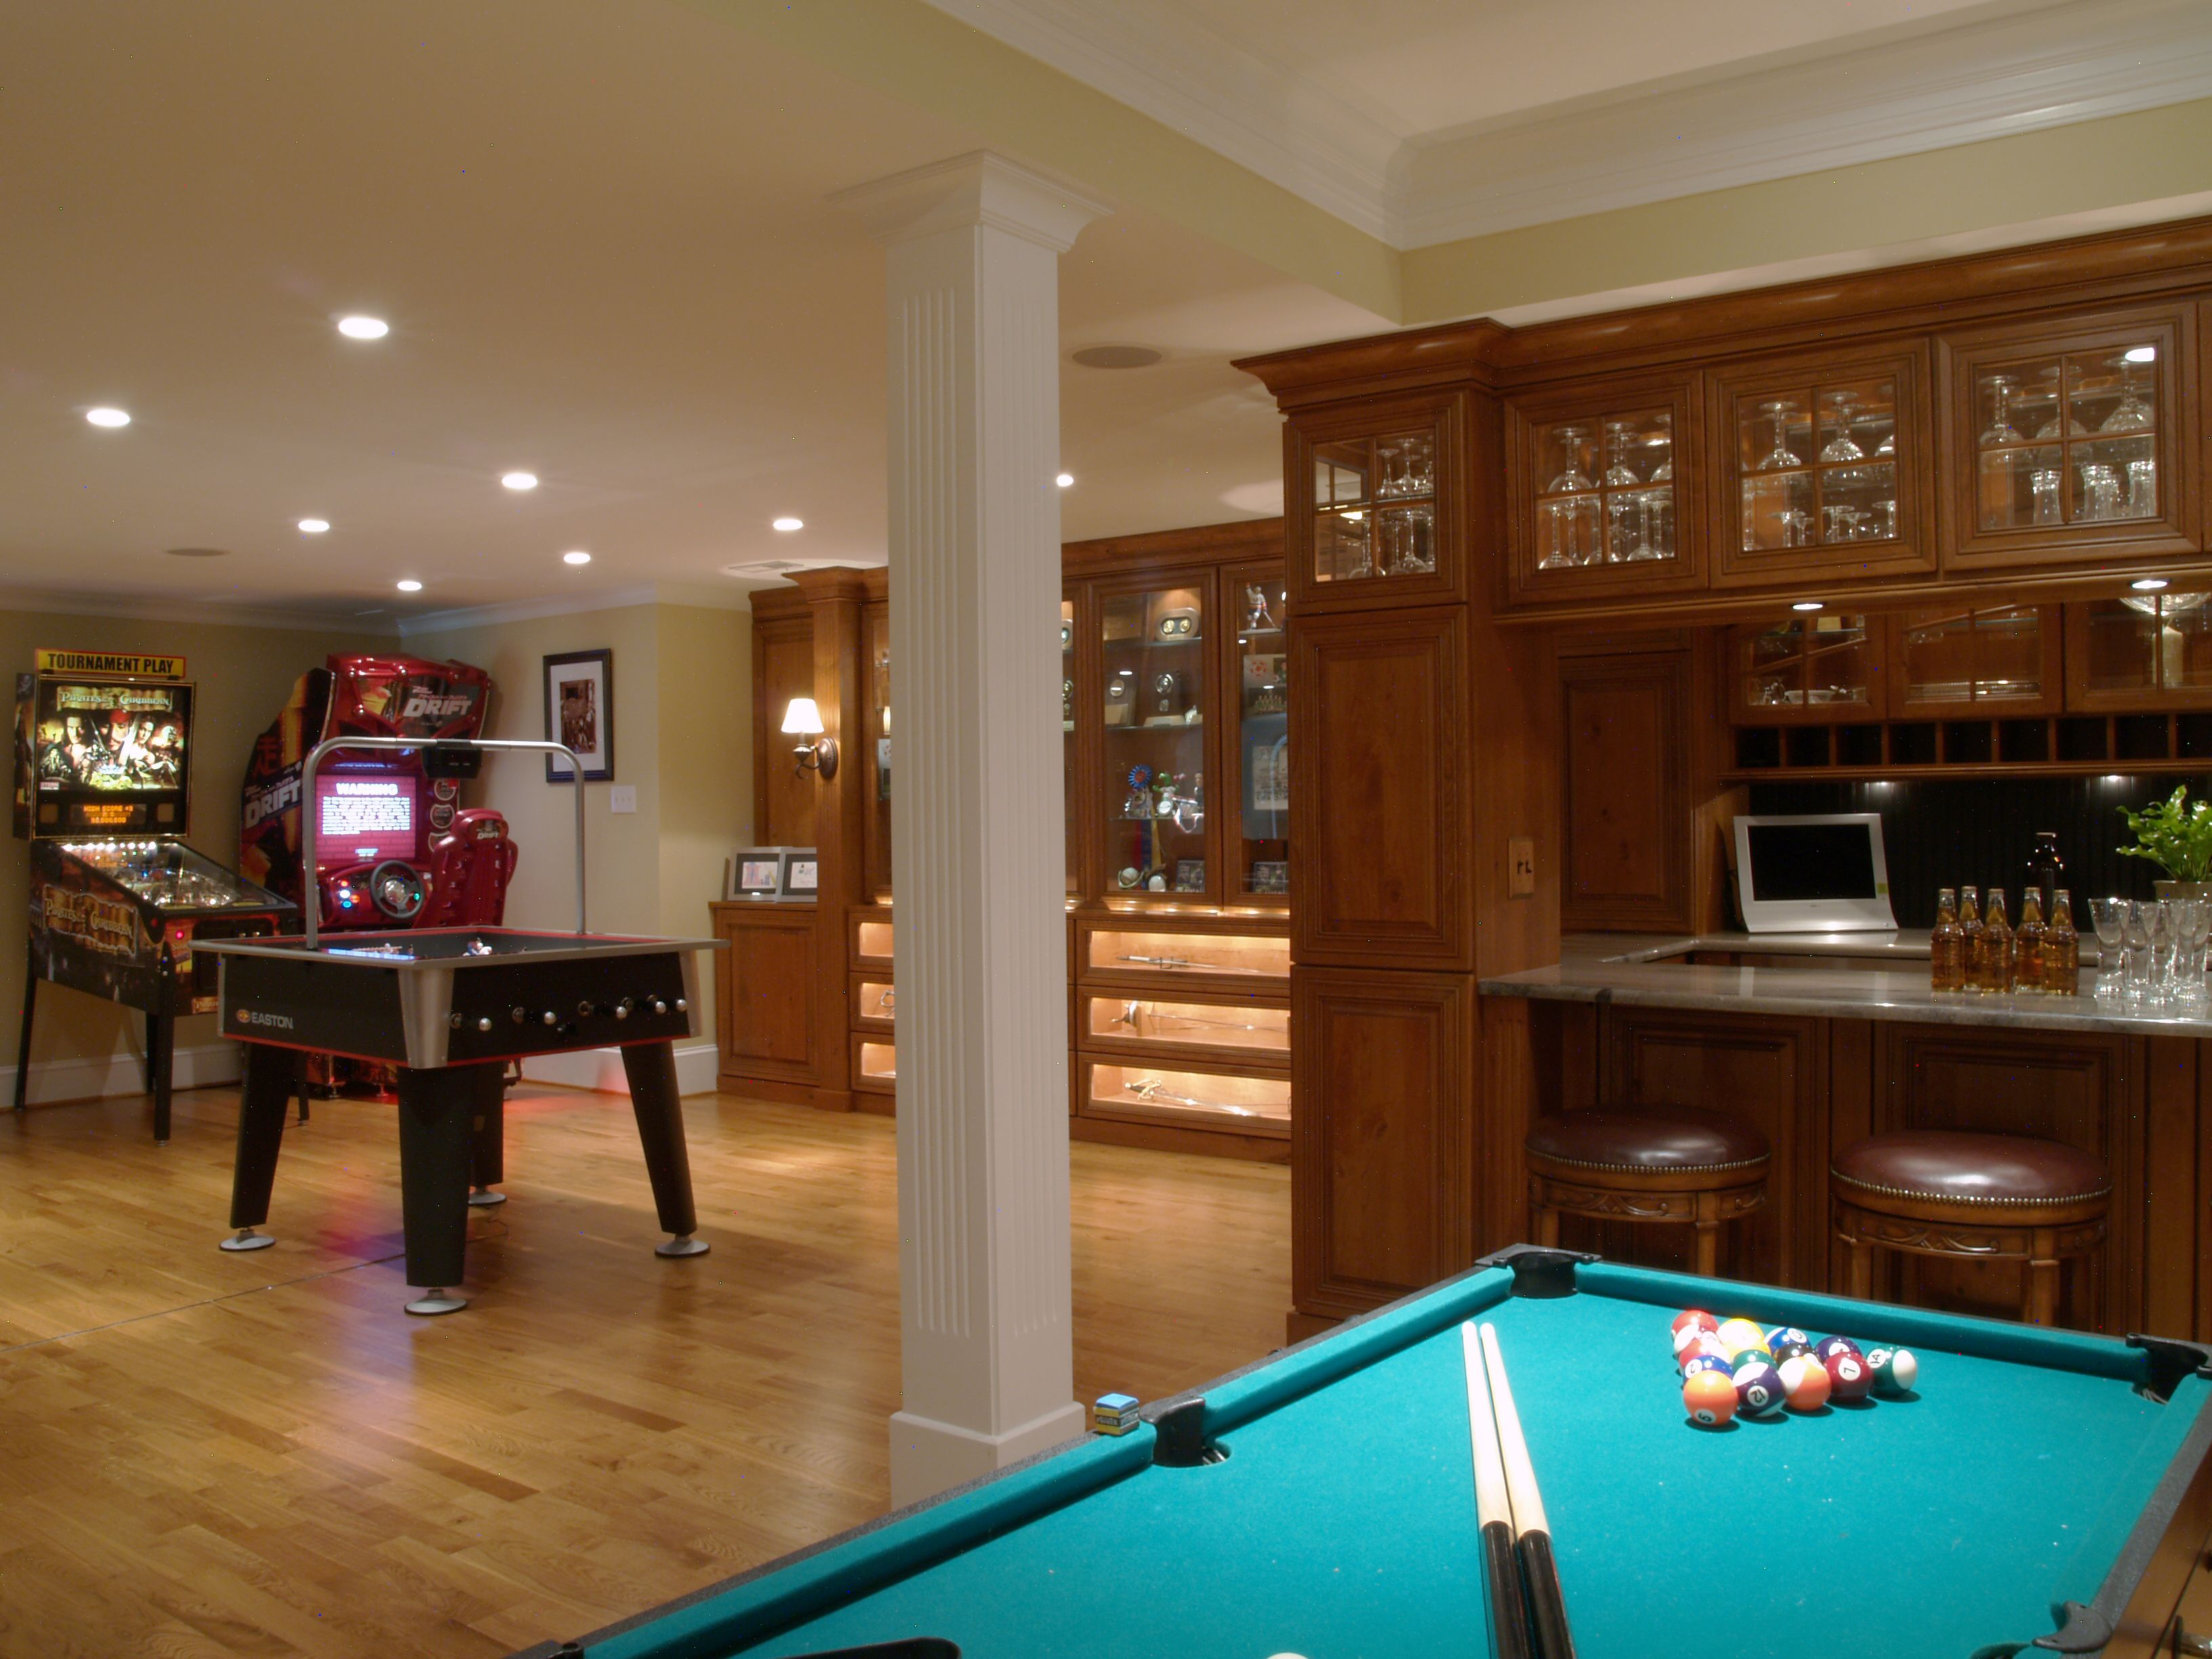 delightful Game Room Basement images